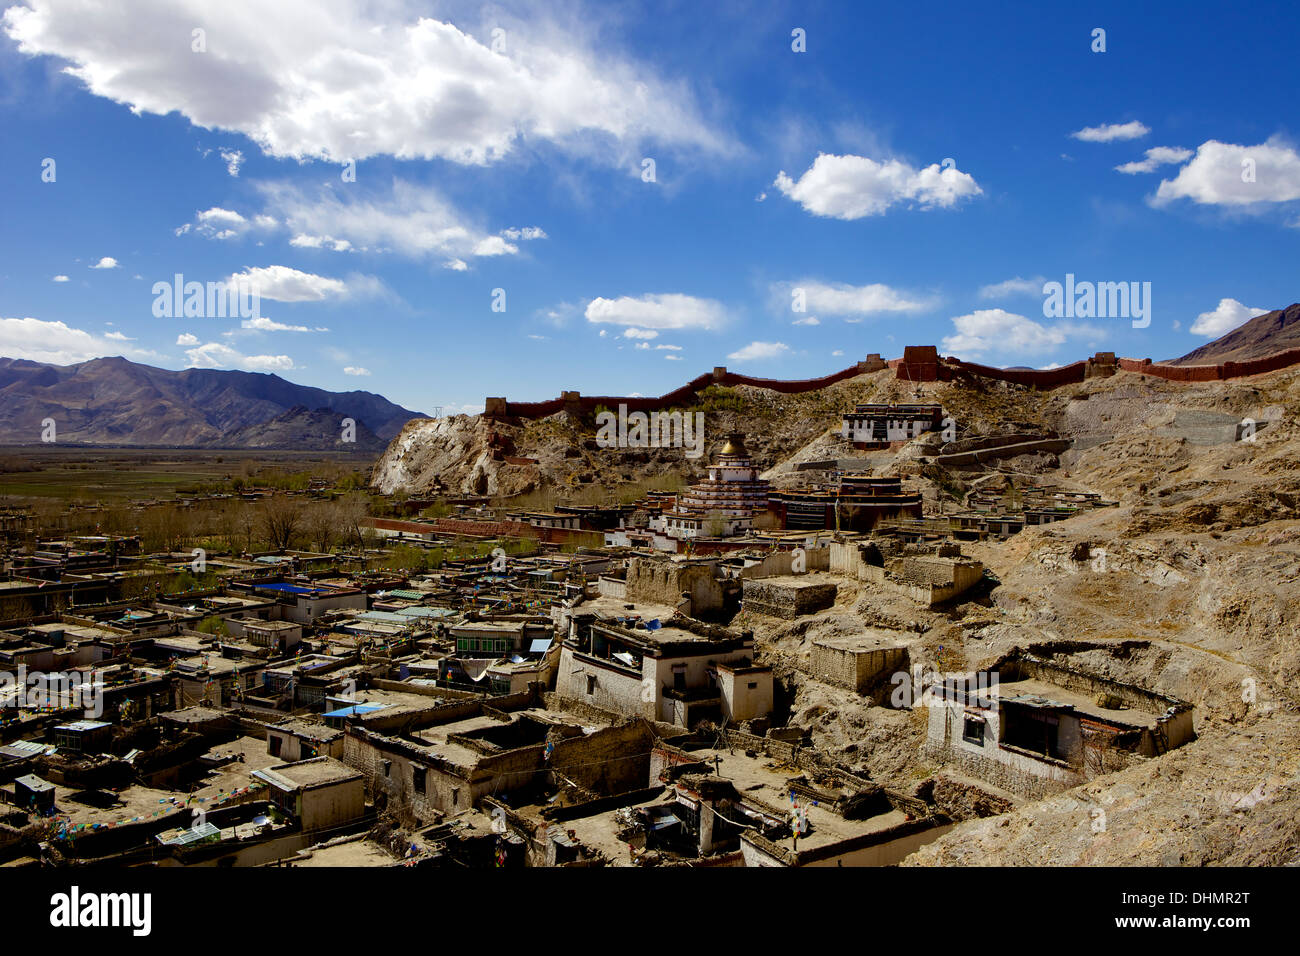 View of the Kumbum chorten (Stupa) & Palcho Monastery, Gyantse, Tibet, China, Asia - Stock Image